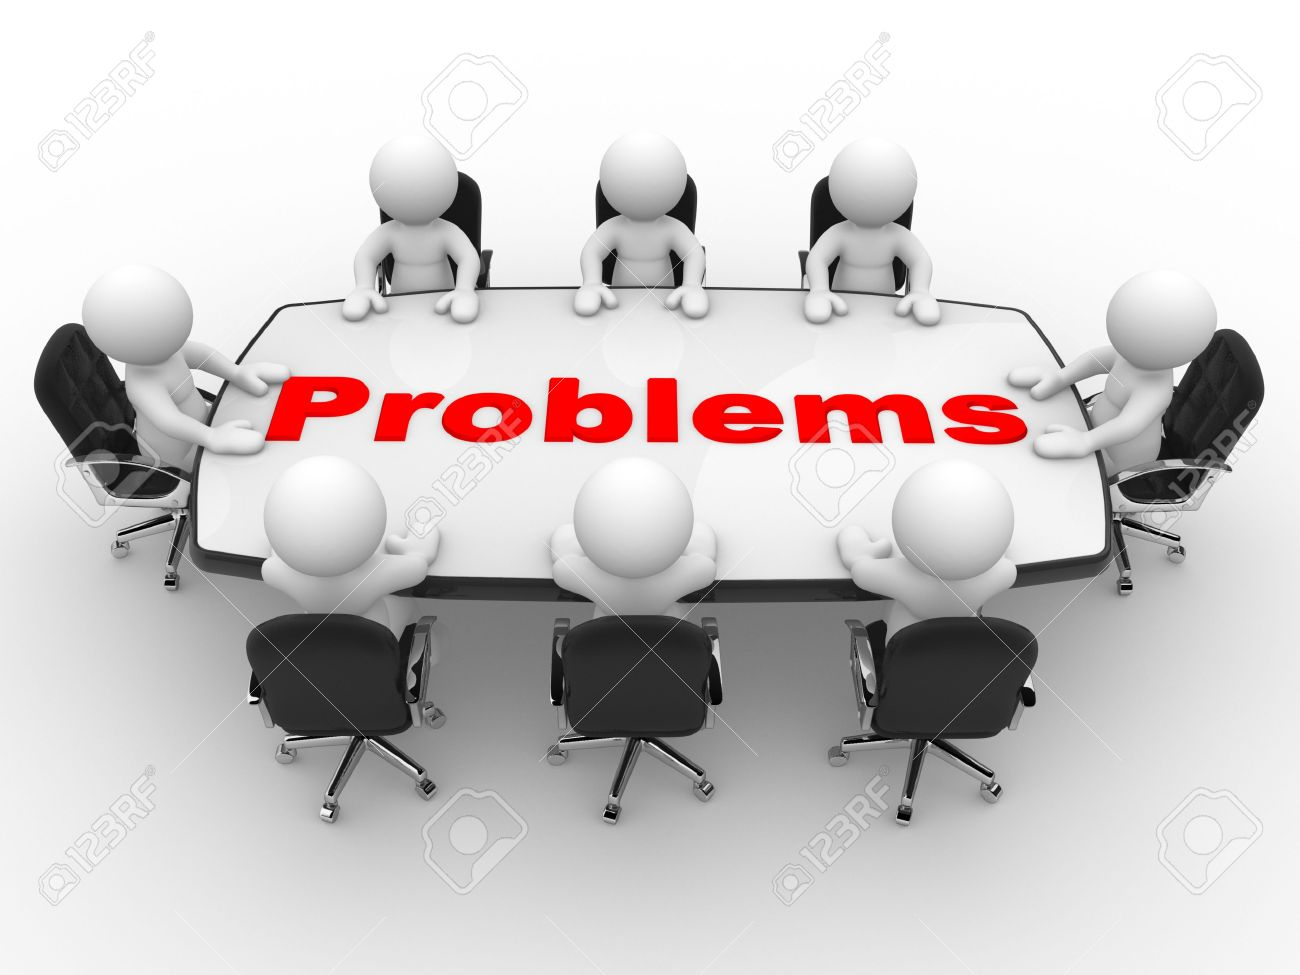 3d people - men, person at conference table  Business problems Standard-Bild - 19986195